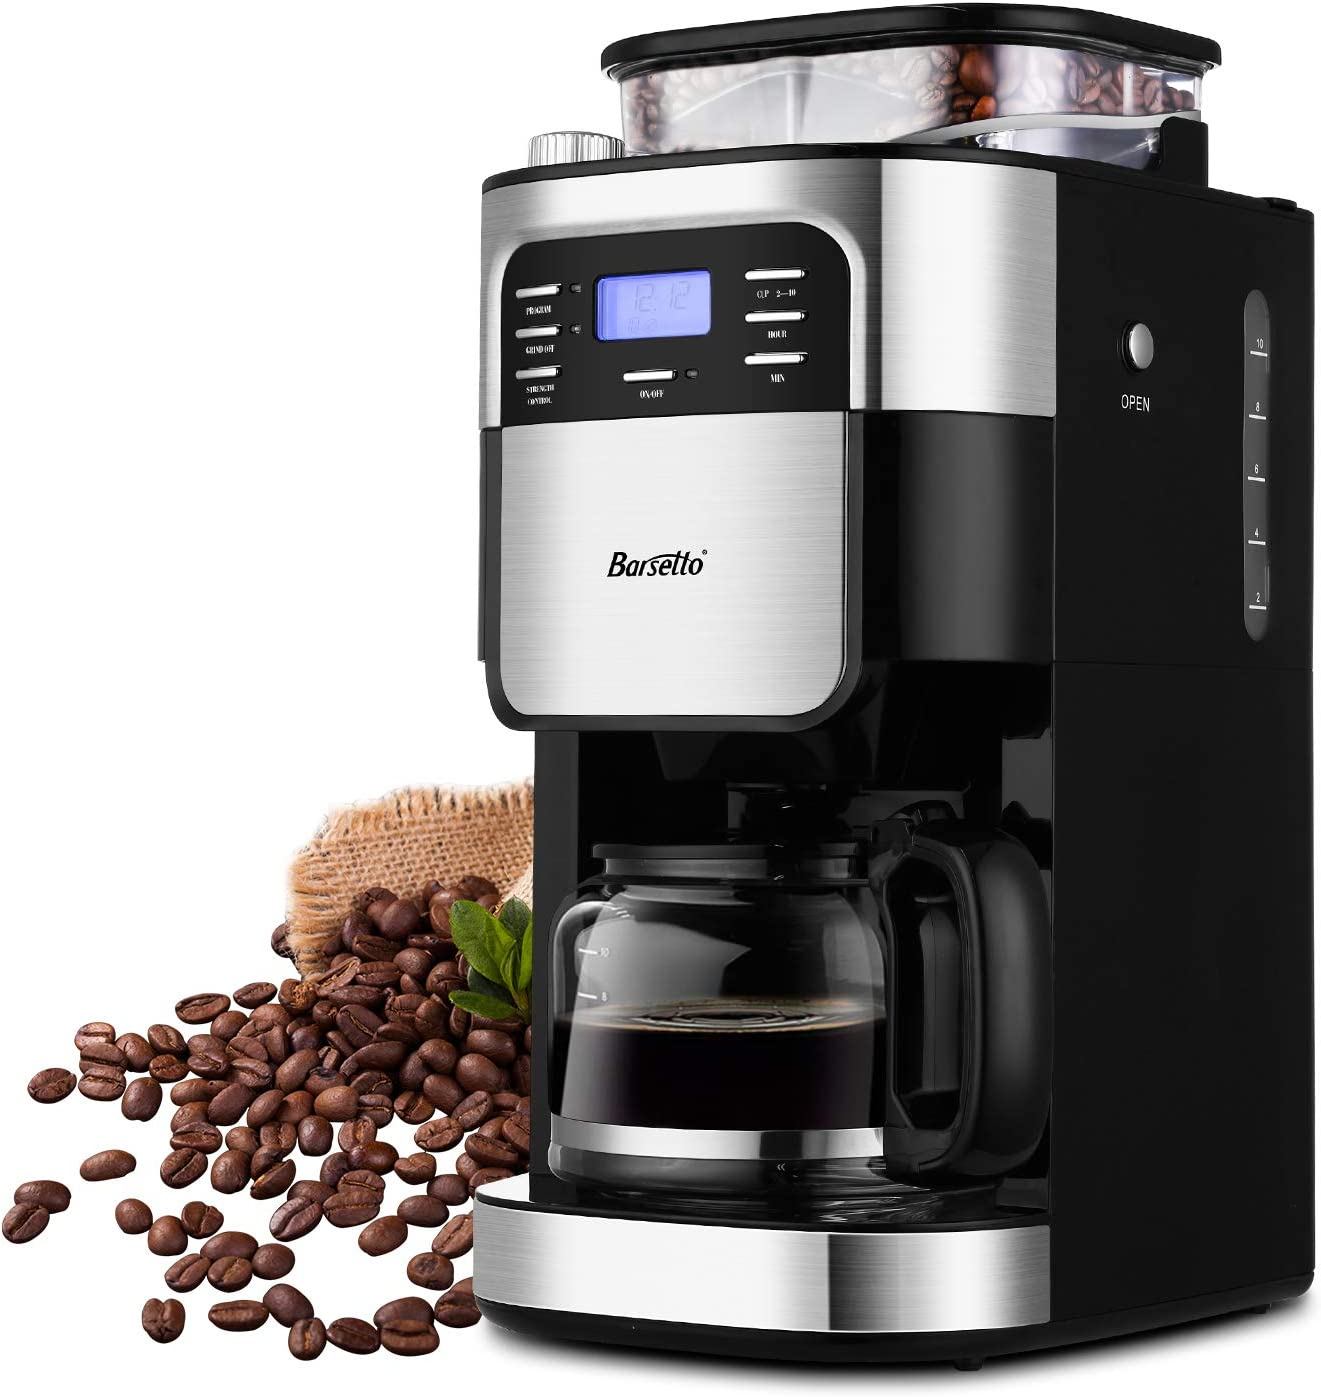 Coffee Maker Machines American Drip Coffee Brewer lot Espresso Cup All Colors